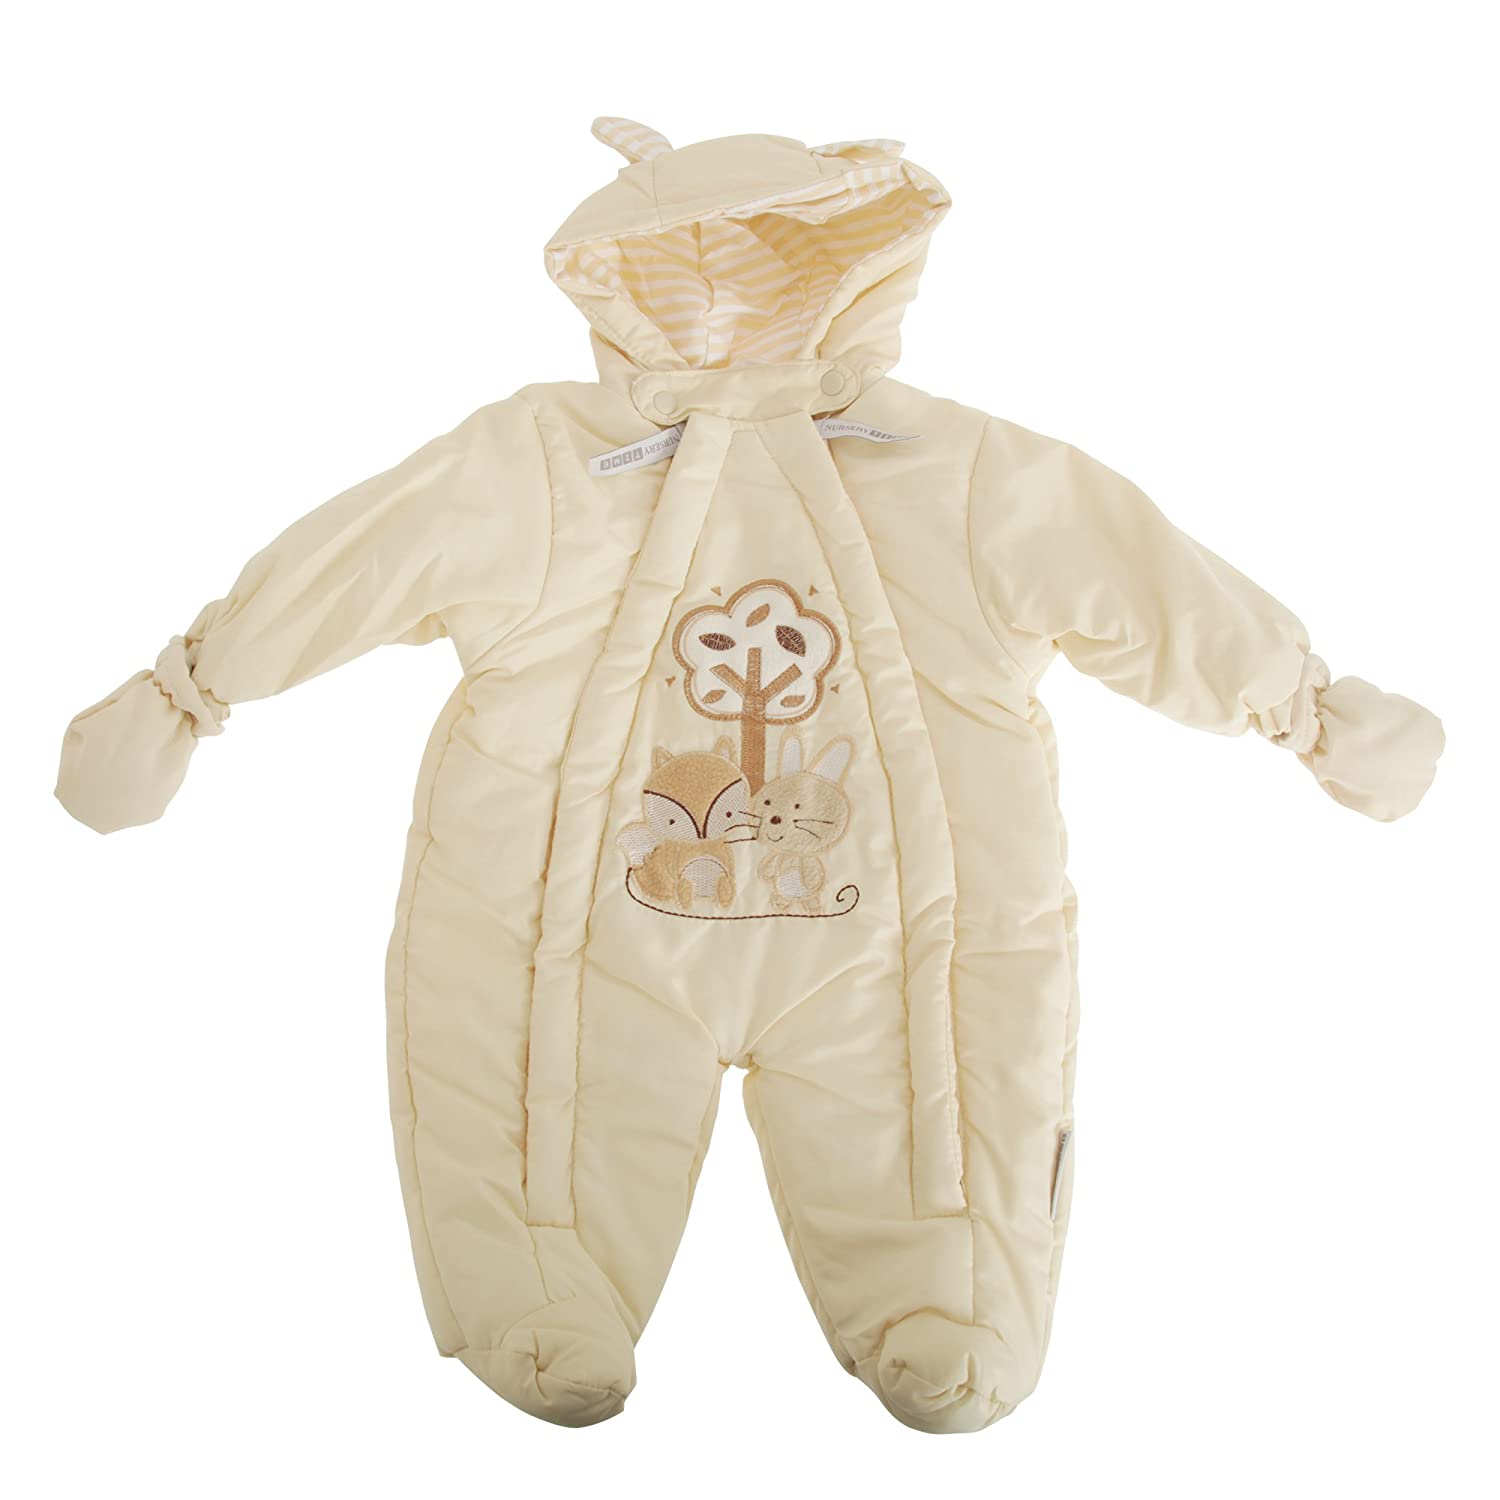 Nursery Time Baby Boys/Girls Fox and Bunny All in One Hooded Winter Snowsuit (Newborn) (Cream) UTBABY1425_1